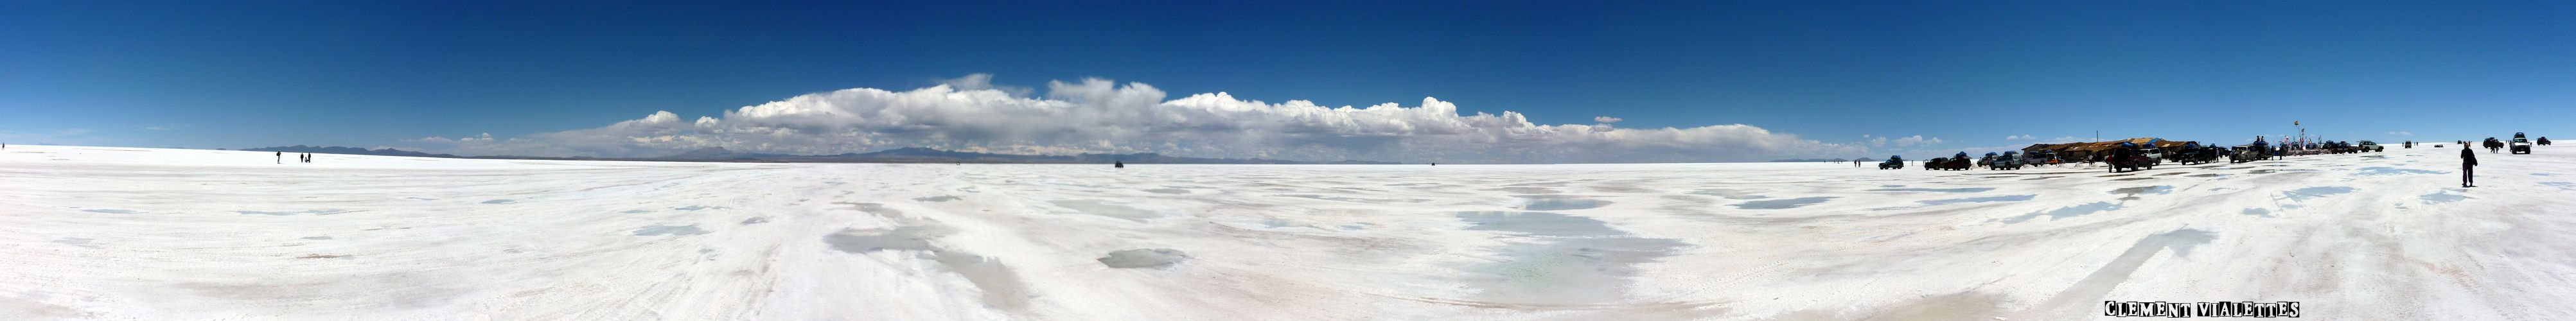 bolivie uyuni salar panoramique